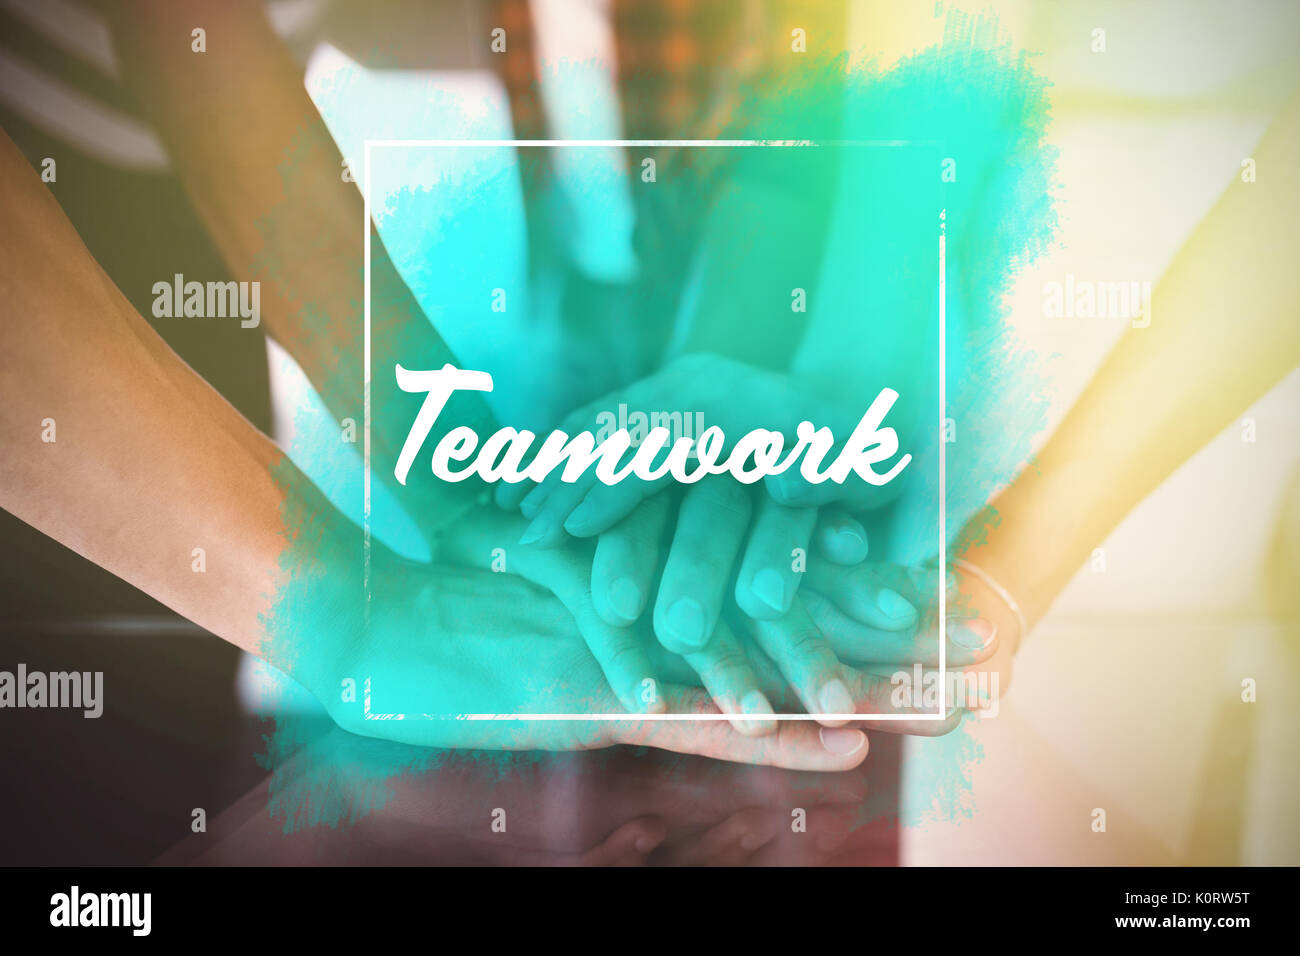 Teamwork text message against business people stacking hands